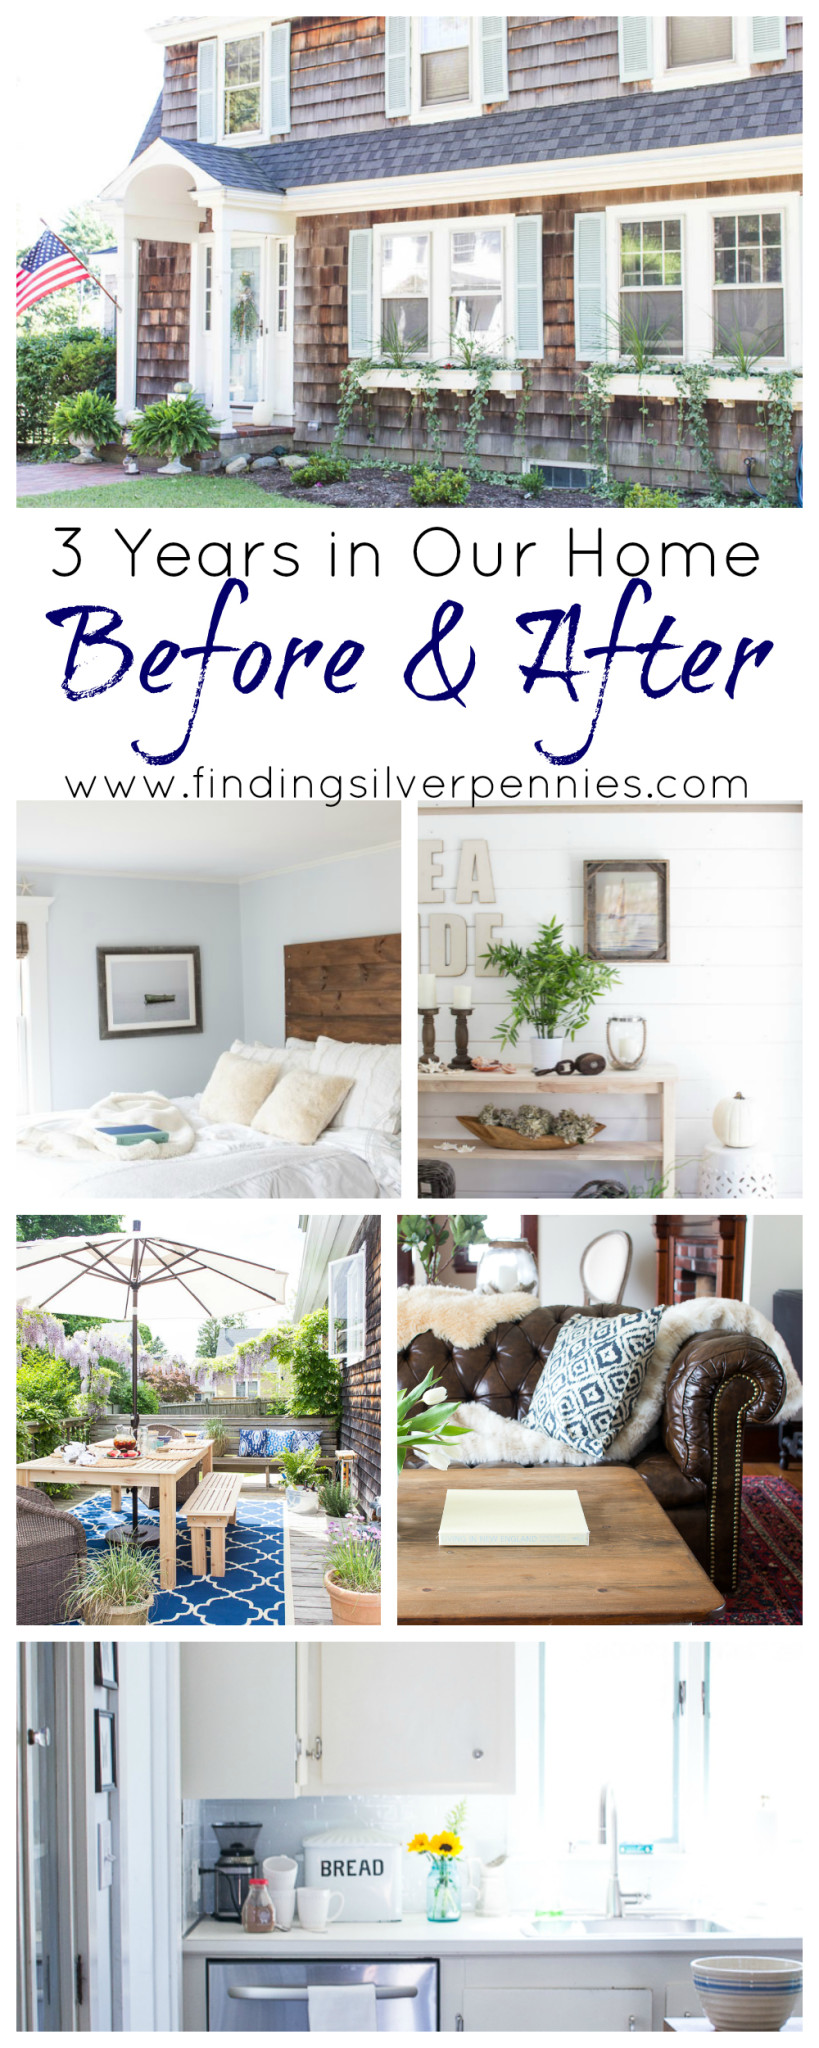 A before & after home tour celebrating three years in our home. It is incredible how much we've done in the past year. www.findingsilverpennies.com